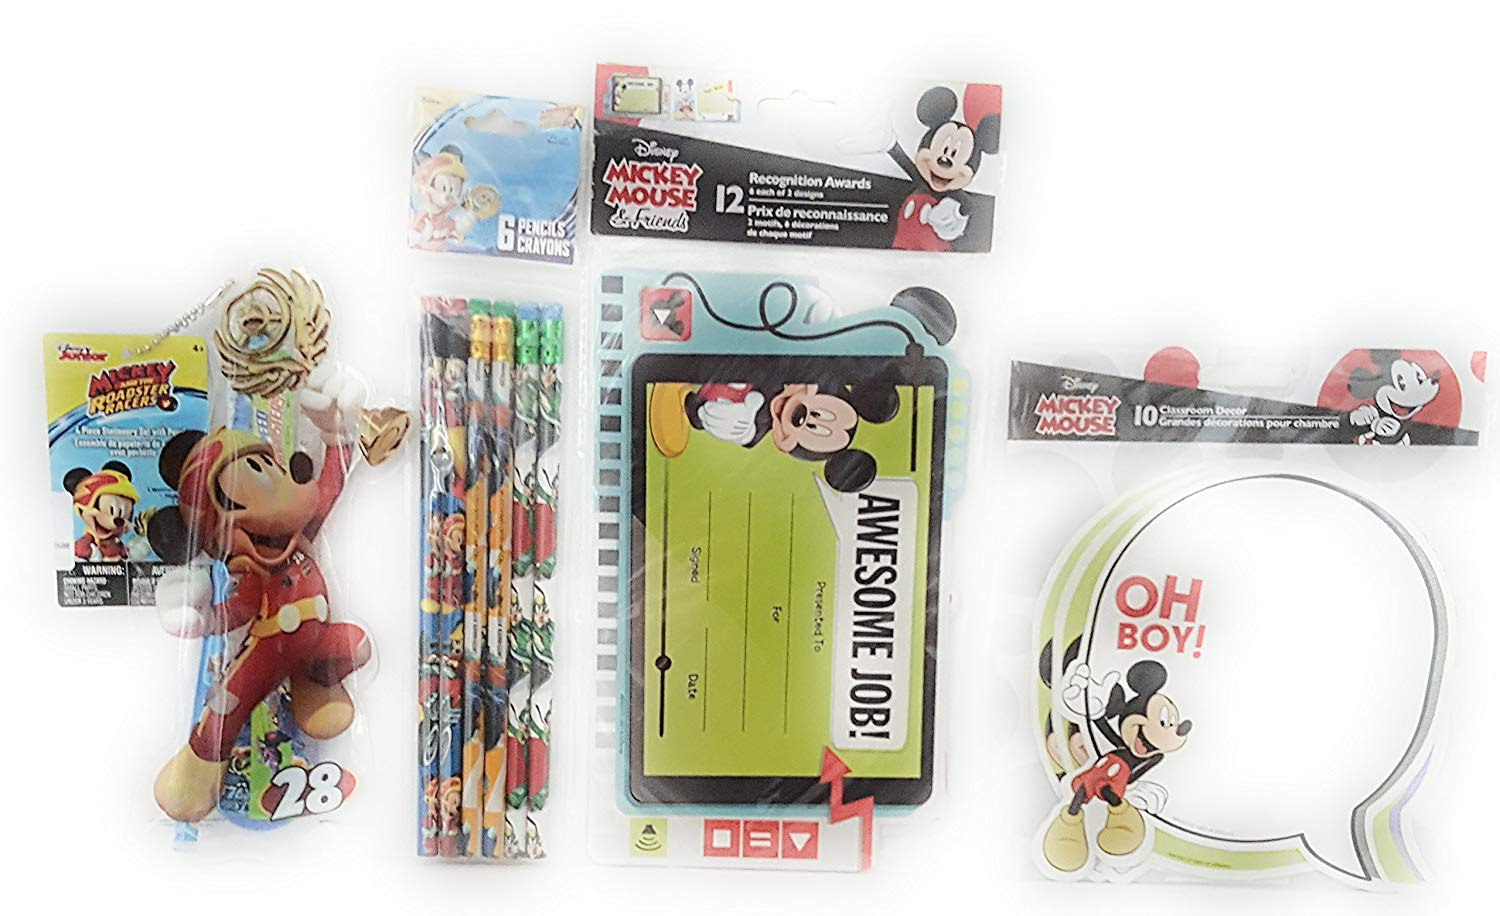 Back to School Toddler Pre-School Elementary School Supplies Pencils Pencil Pouch Awesome Job Recognition Awards Classroom Decor Mickey Mouse